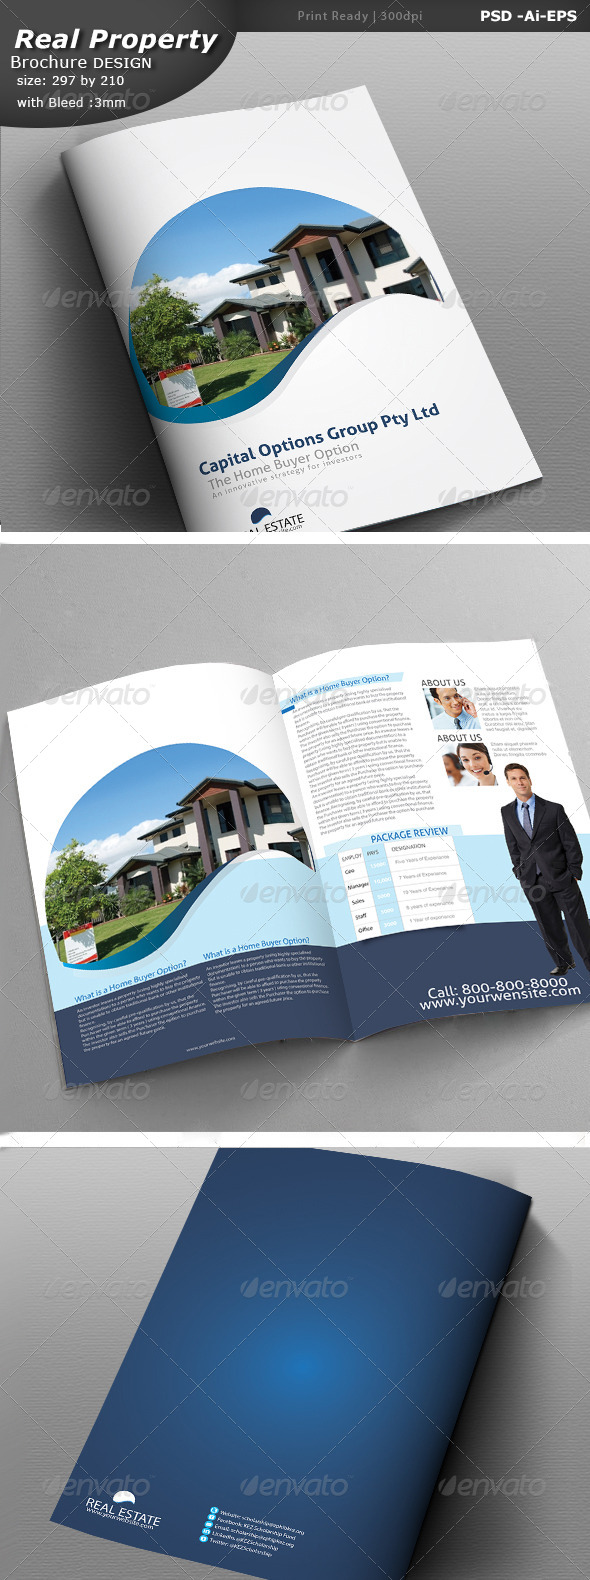 GraphicRiver Real Estate Brochure Design 6927030